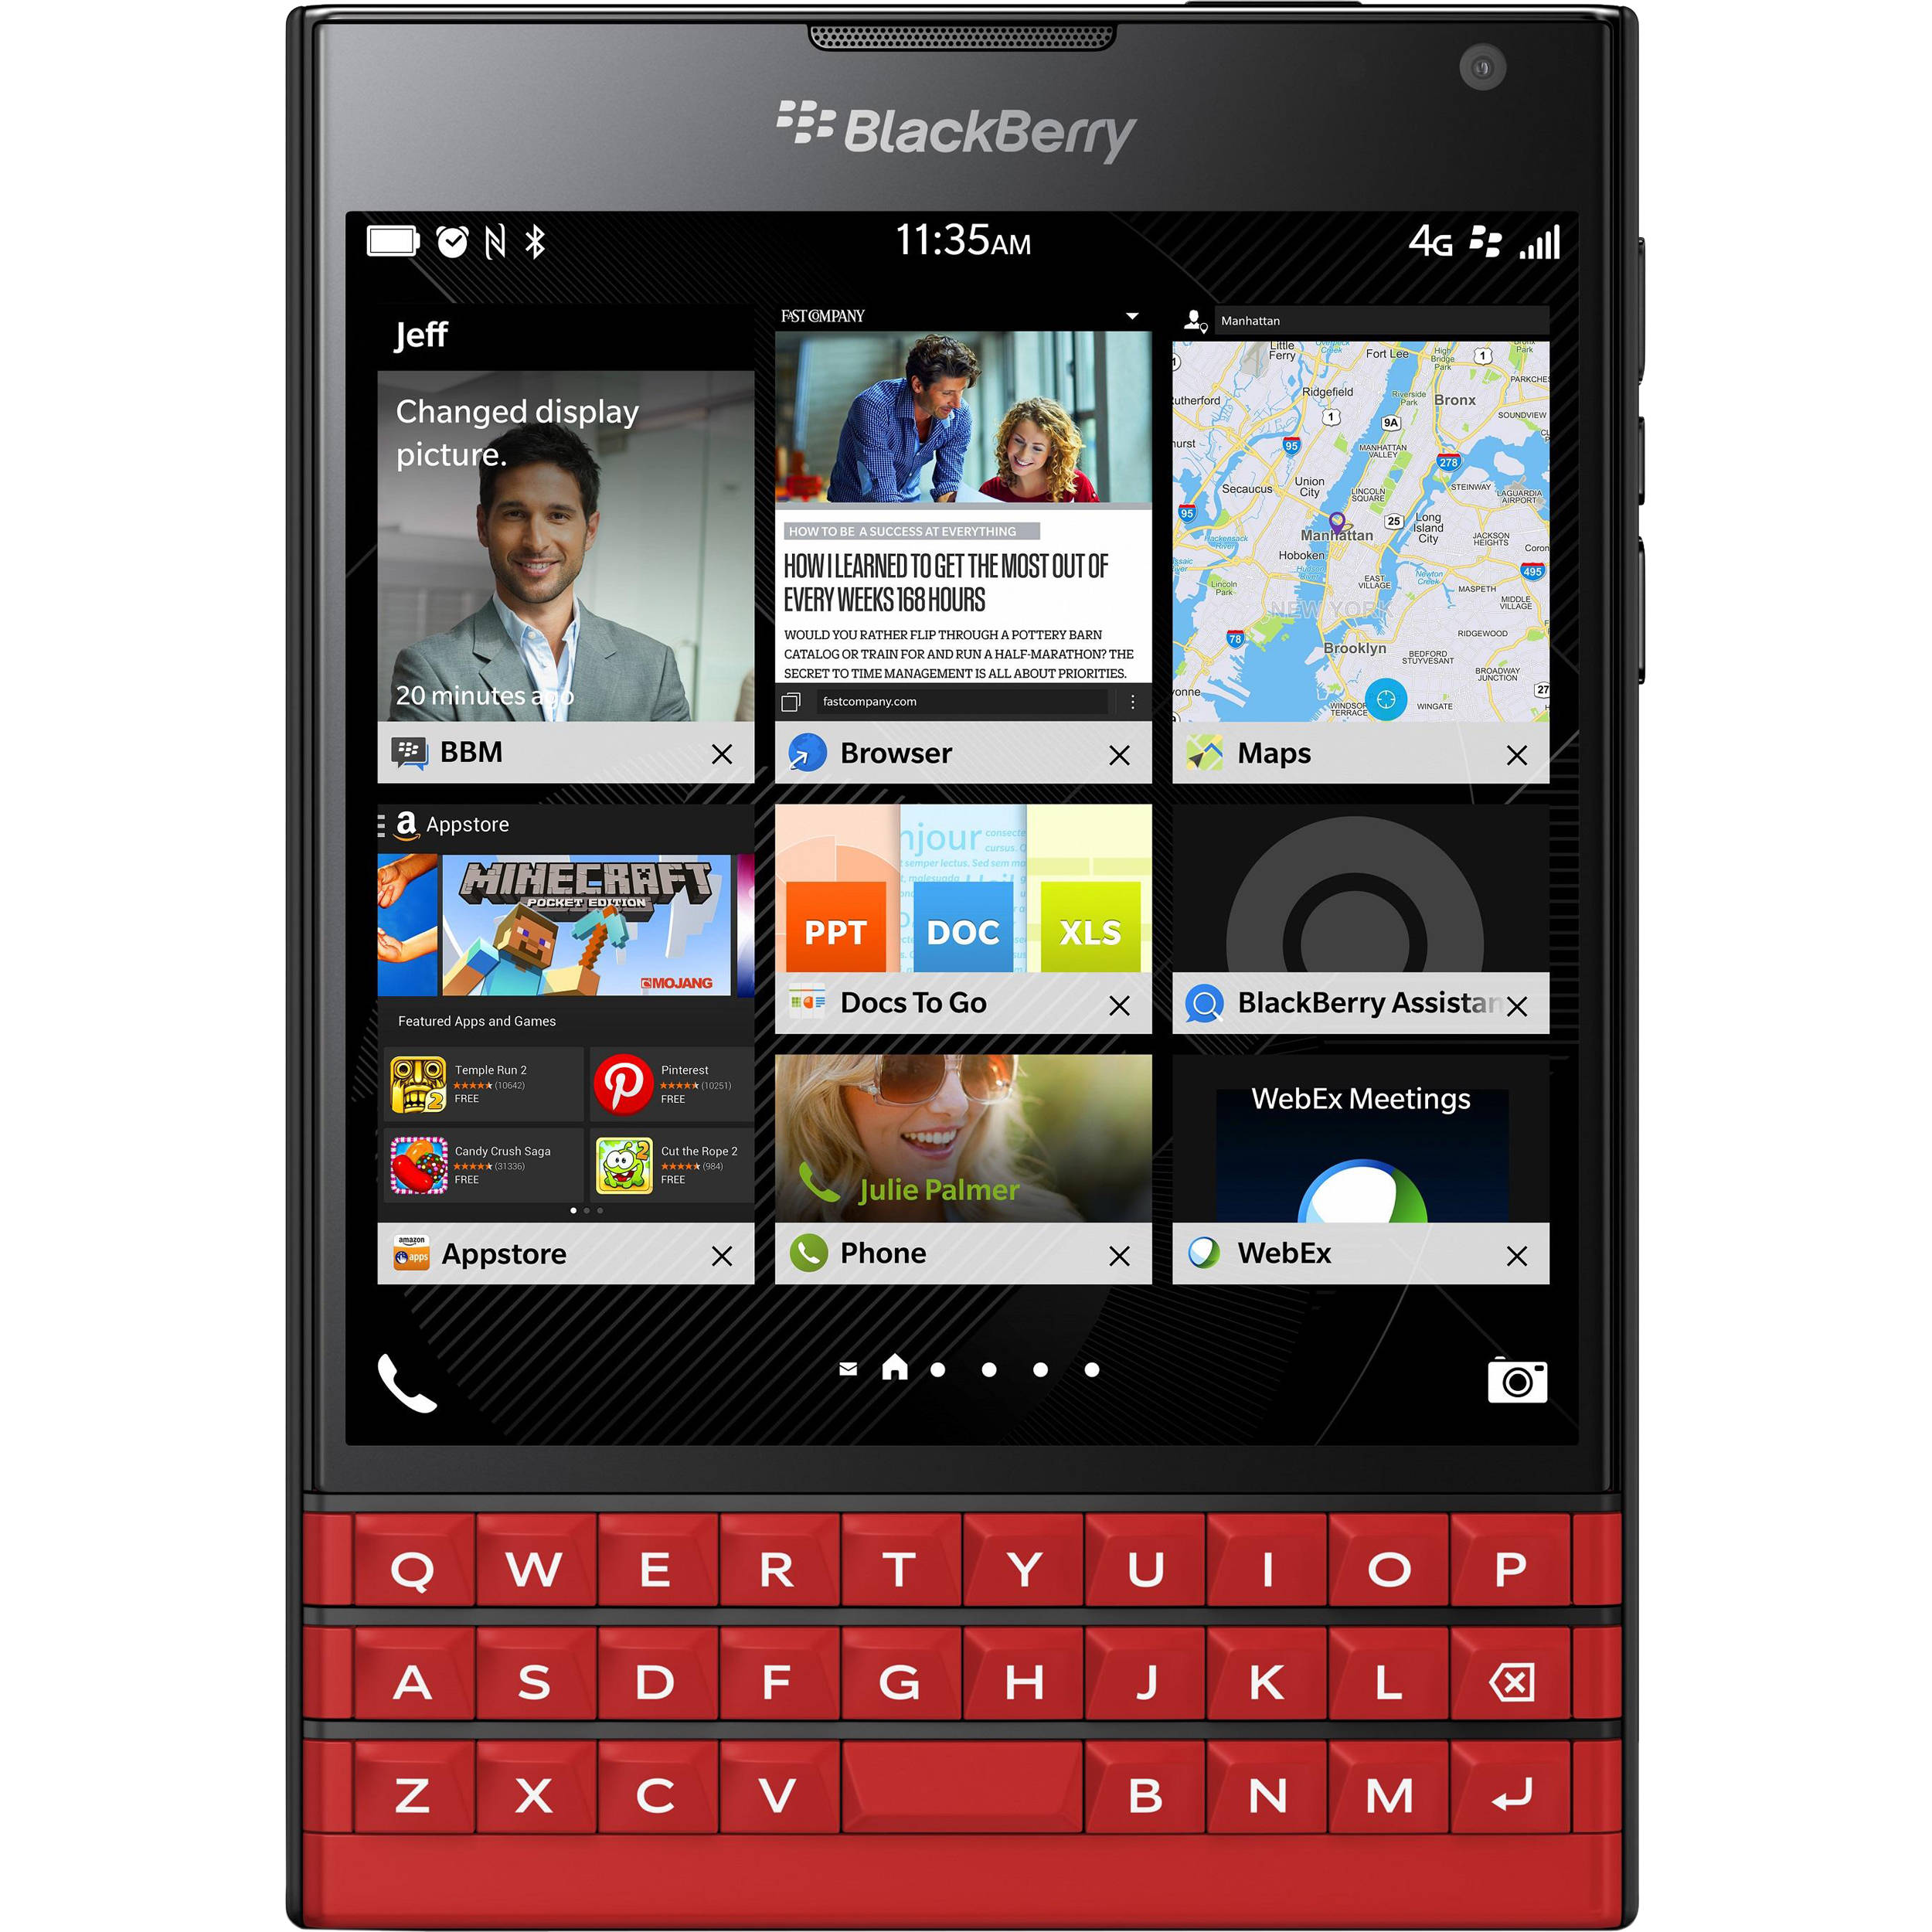 Blackberry passport sqw100 1 32gb smartphone sqw100 1 red bh blackberry passport sqw100 1 32gb smartphone unlocked red reheart Choice Image